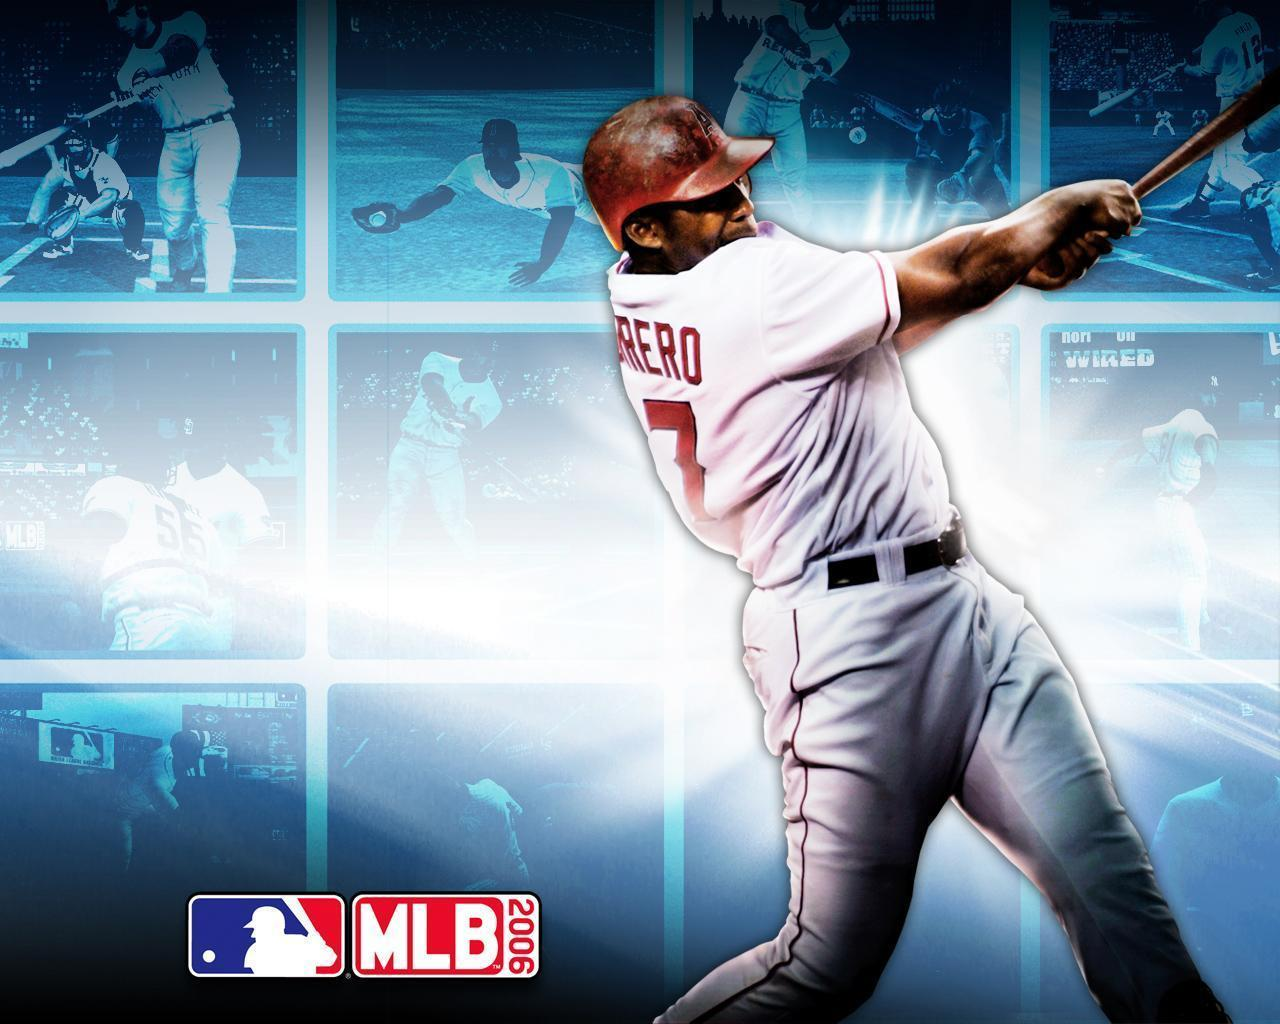 Mlb Wallpapers : Latest Screens Mlb Wallpapers ~ Mlb Wallpapers